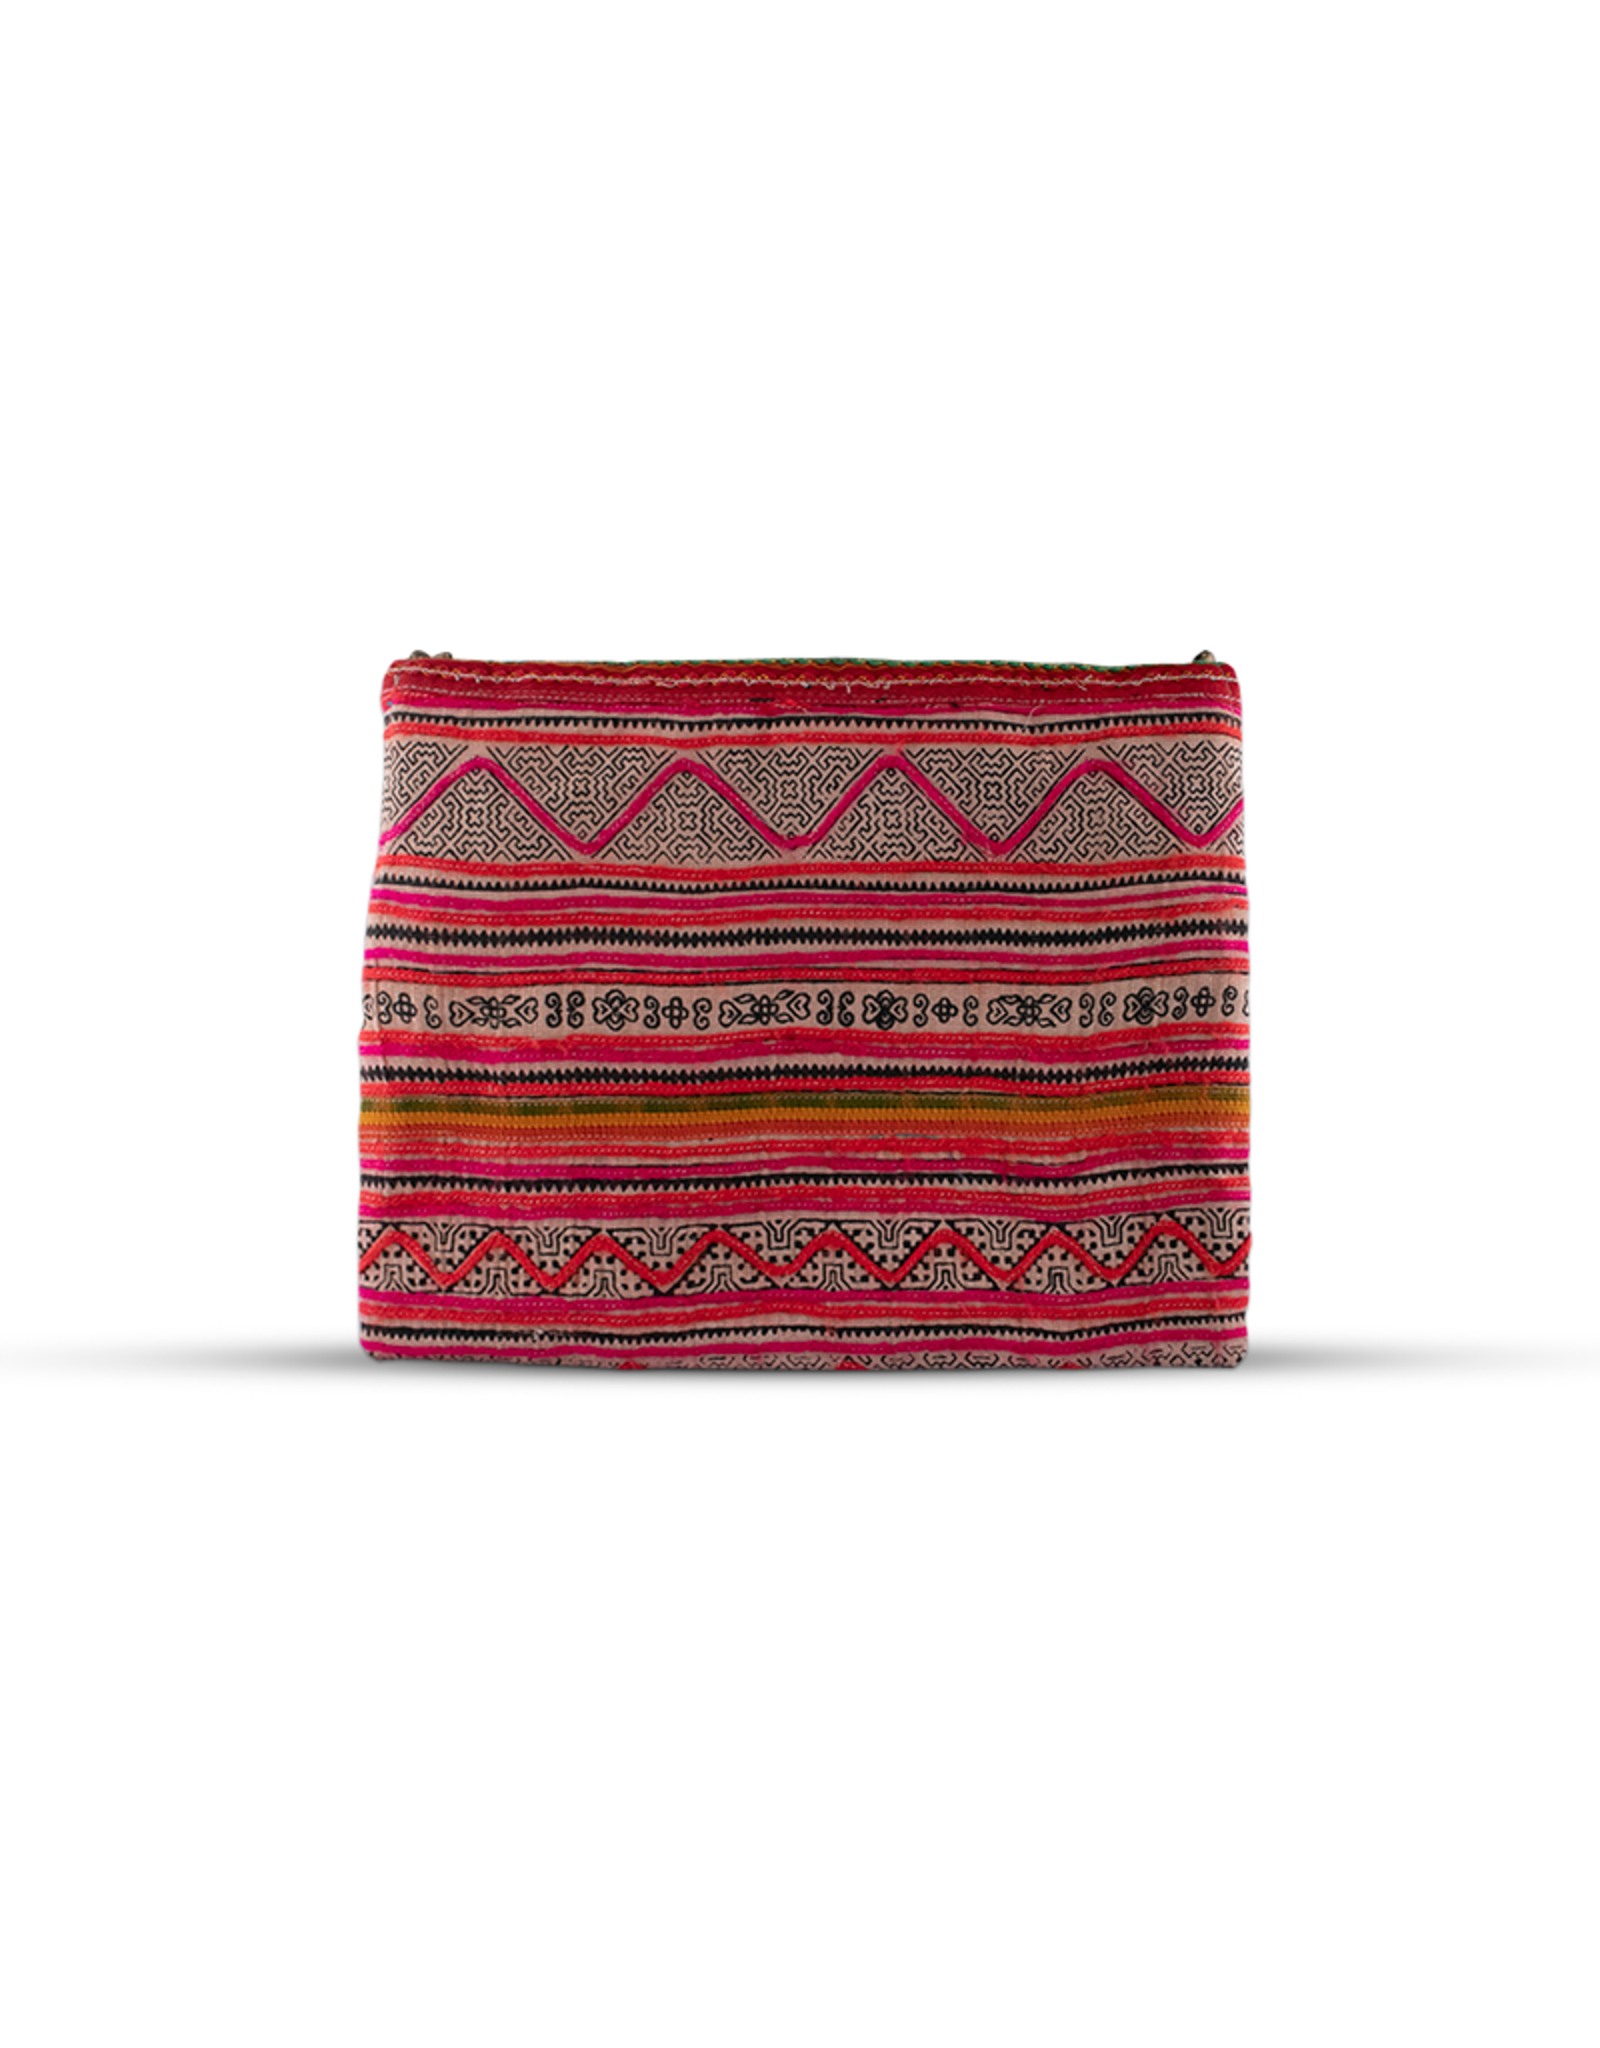 Lumily Coin & Pom Pom Vintage Envelope Clutch